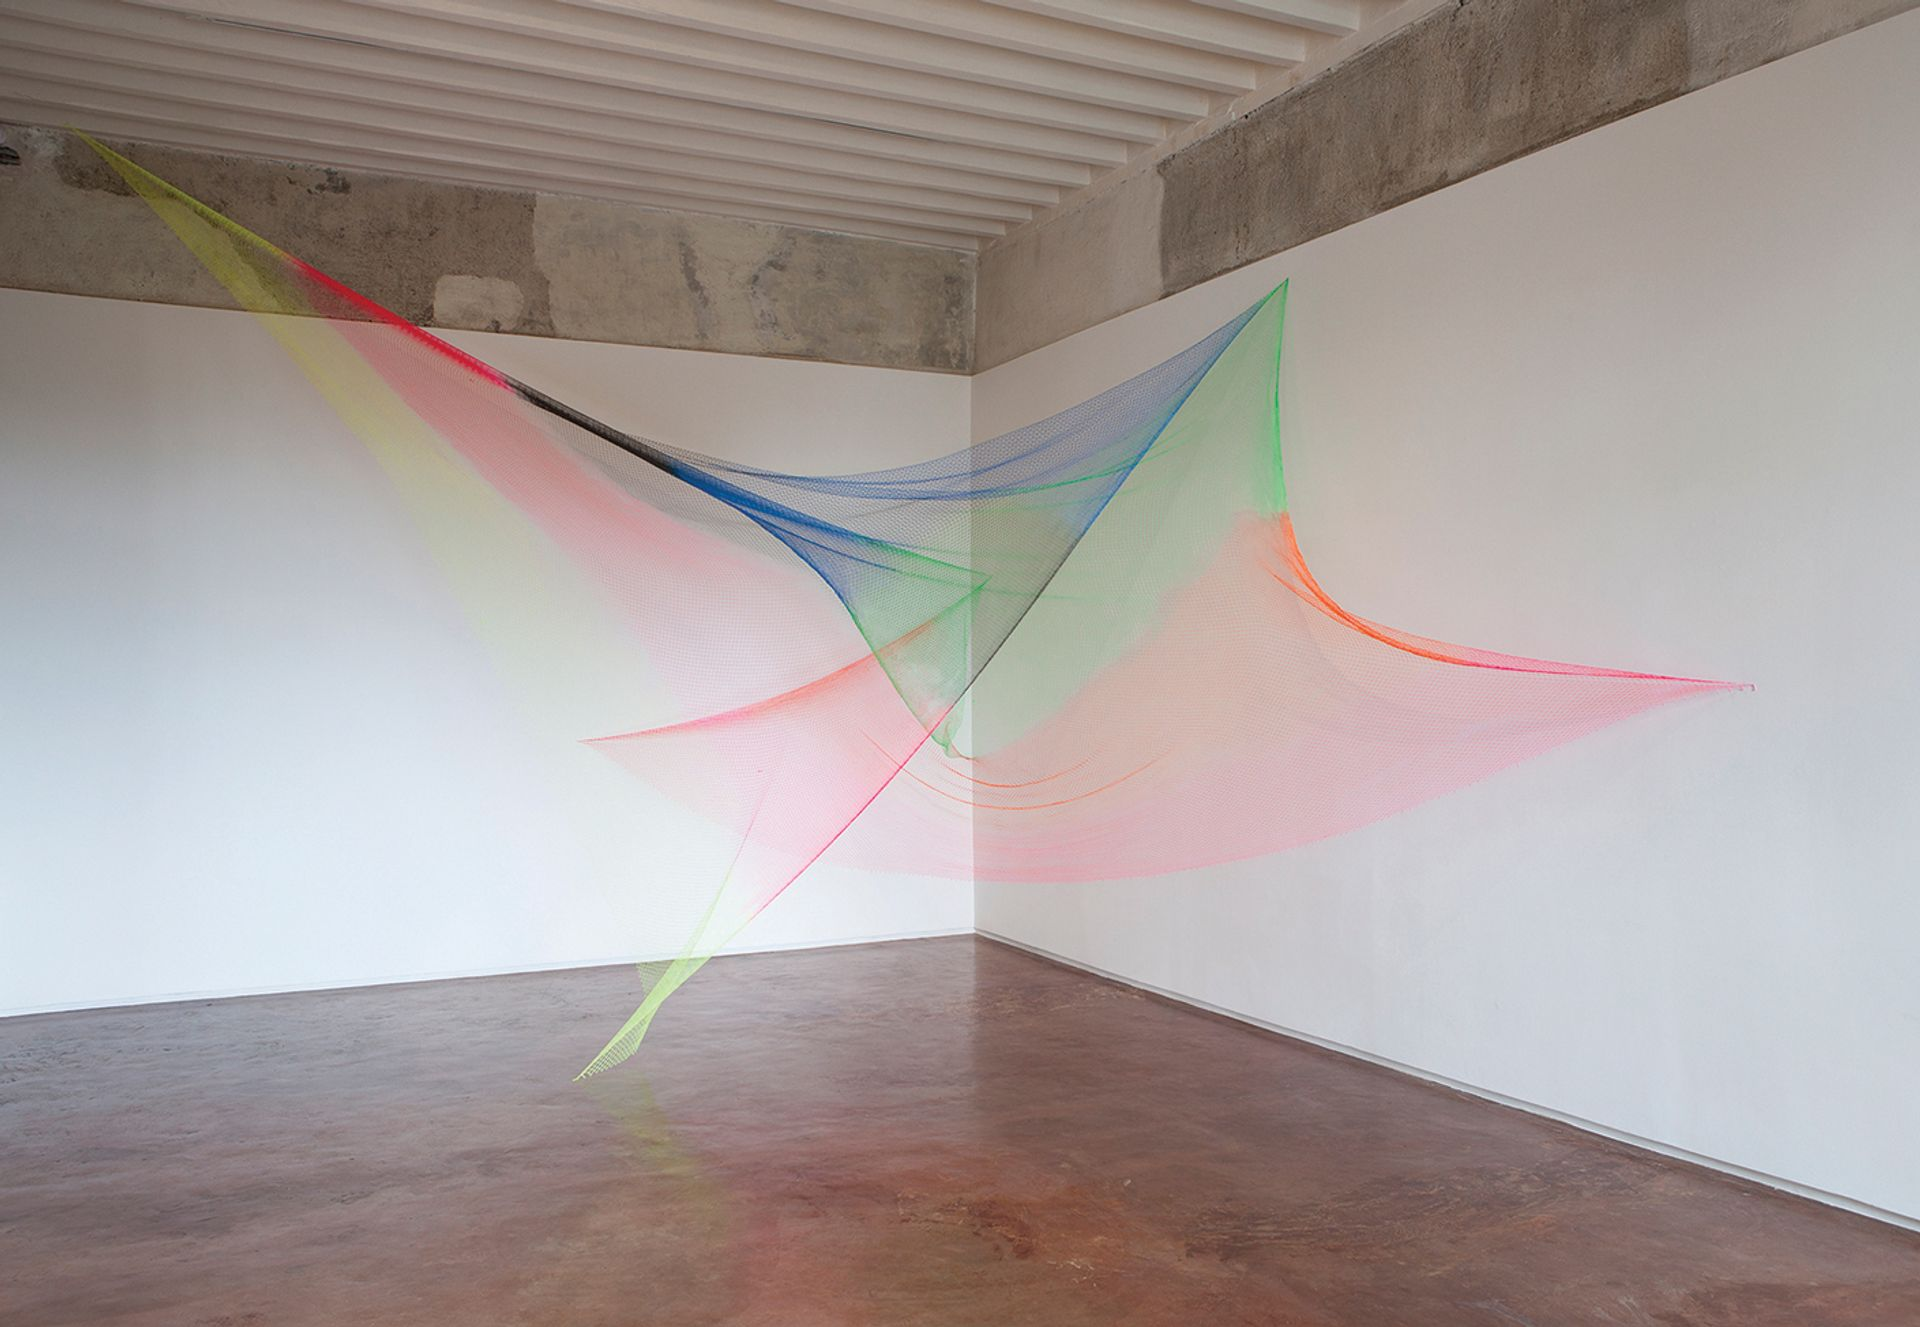 A fishing net forms the basis for Rana Begum's No. 950 /Net (2019) Mohammed Chiba, courtesy Jhaveri Contemporary